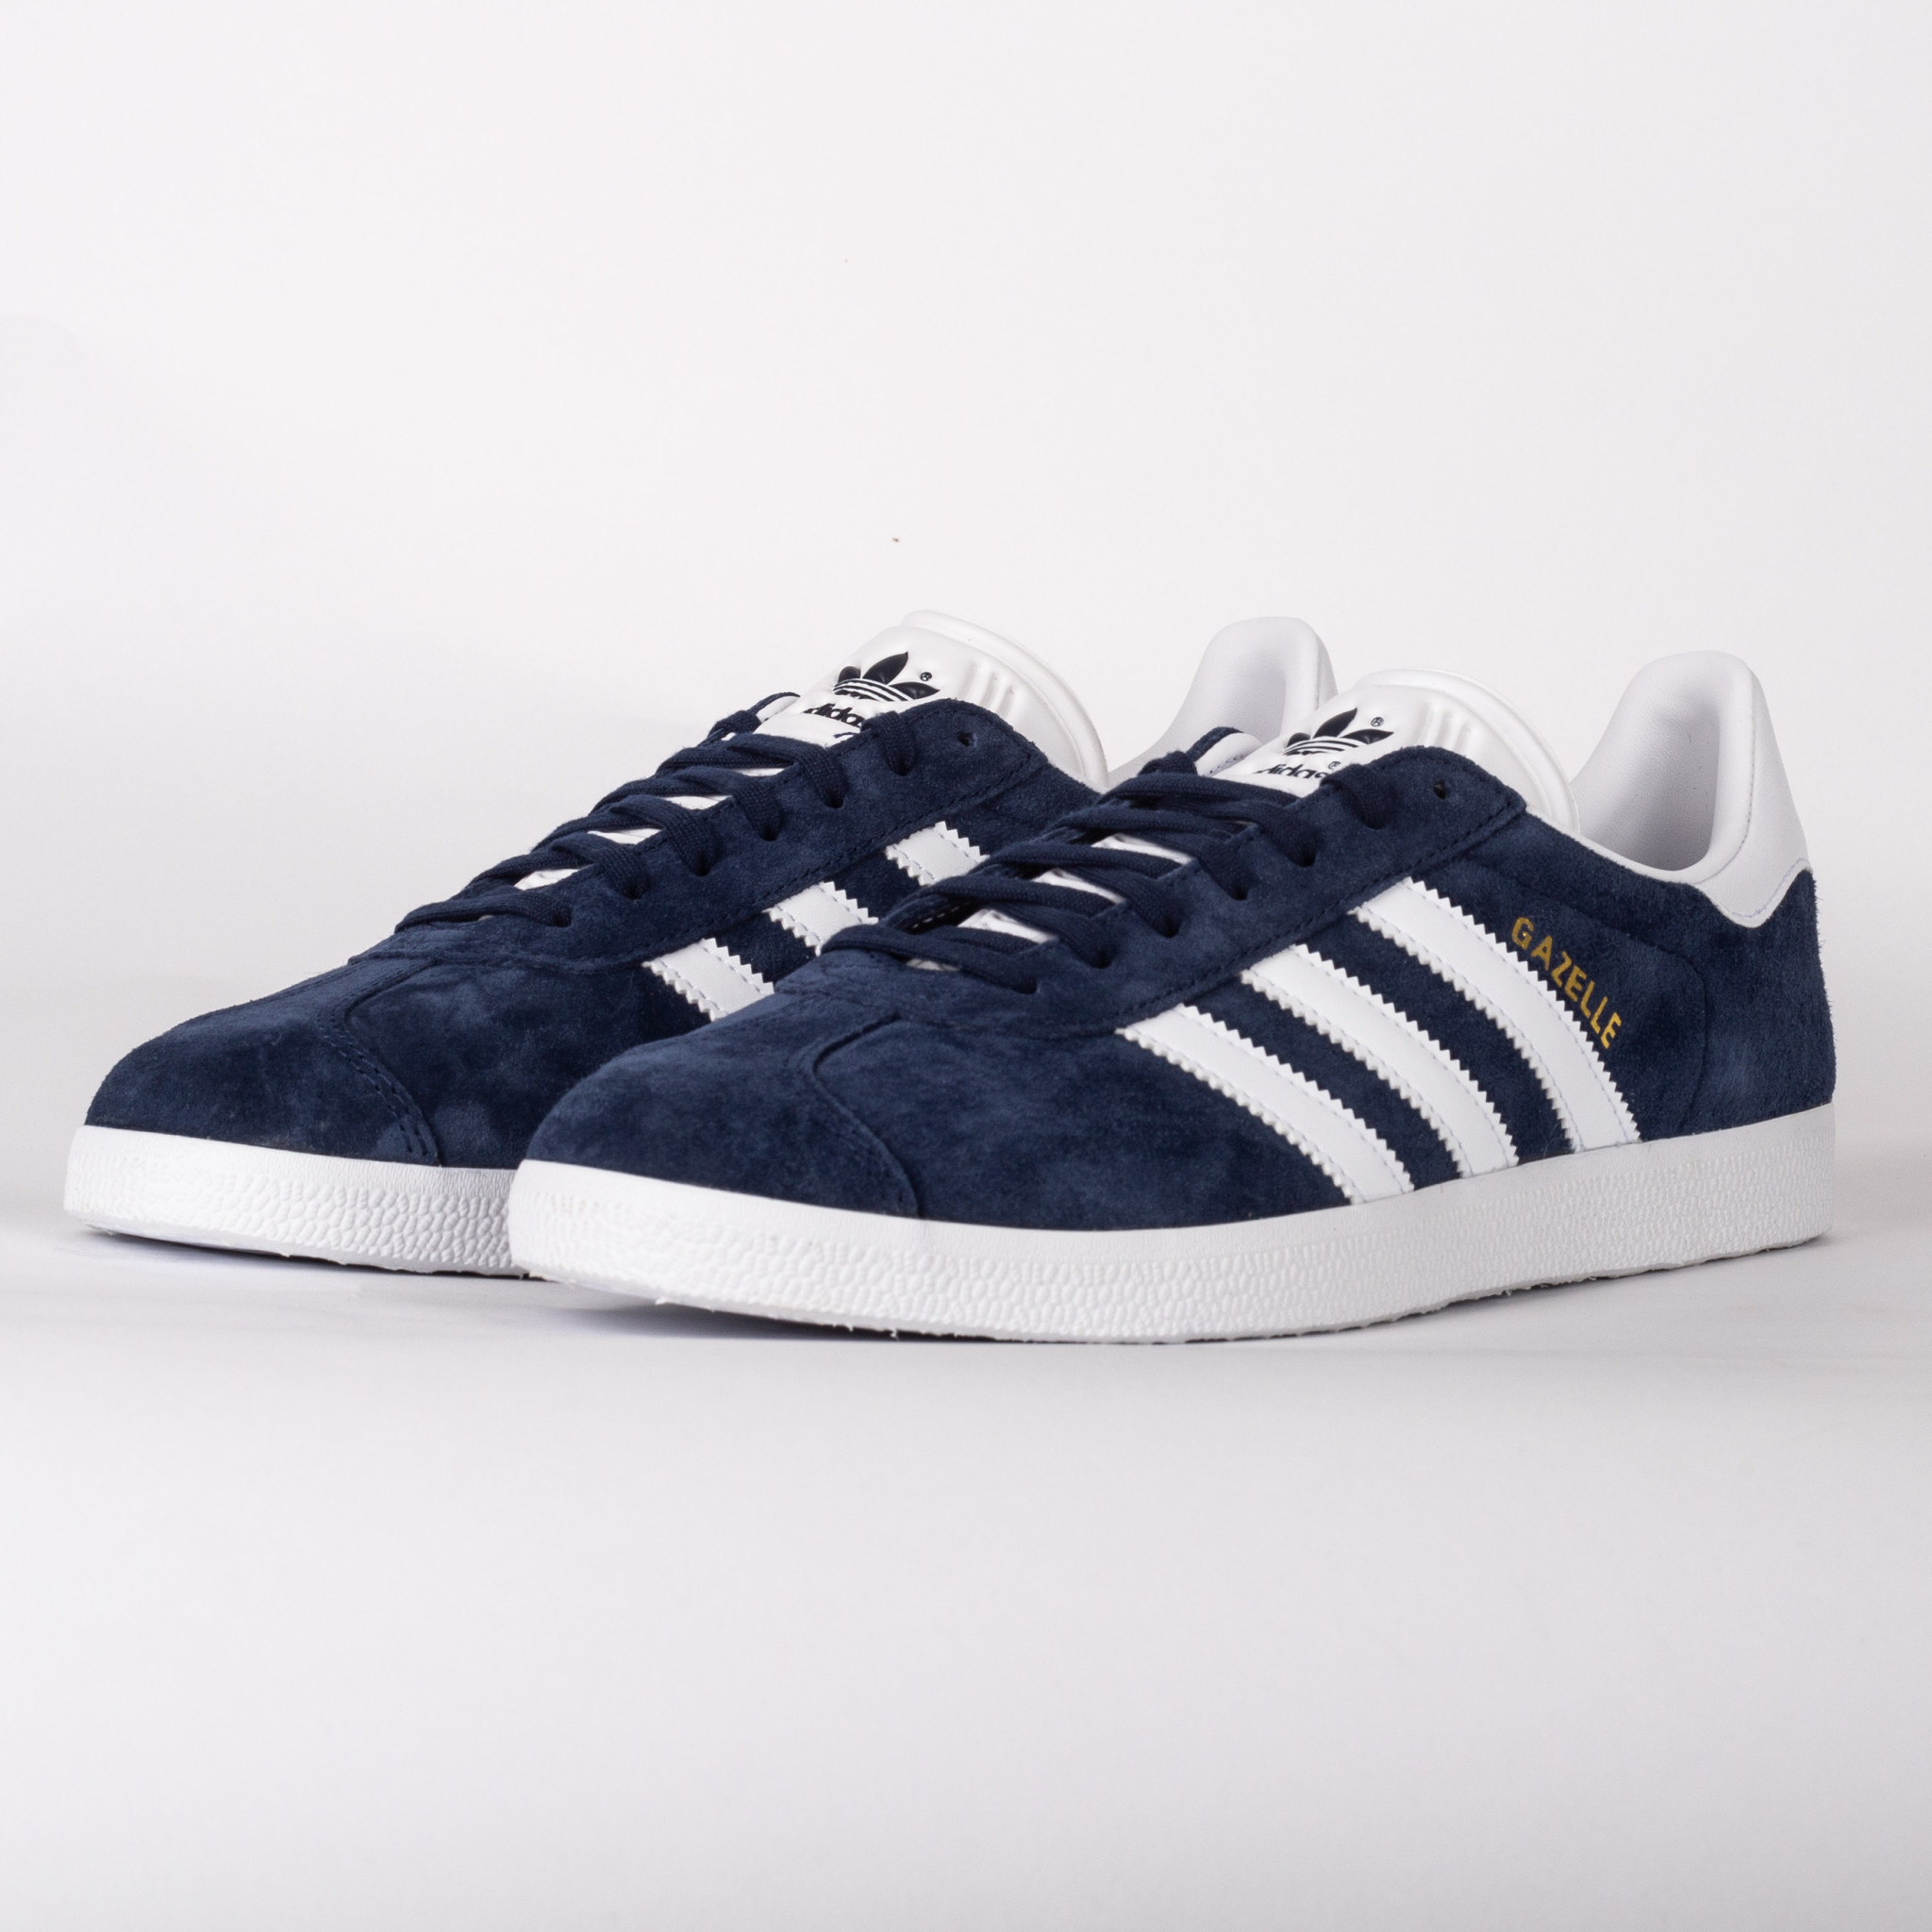 1991 take on the Adidas Gazelle trainers back in two leather